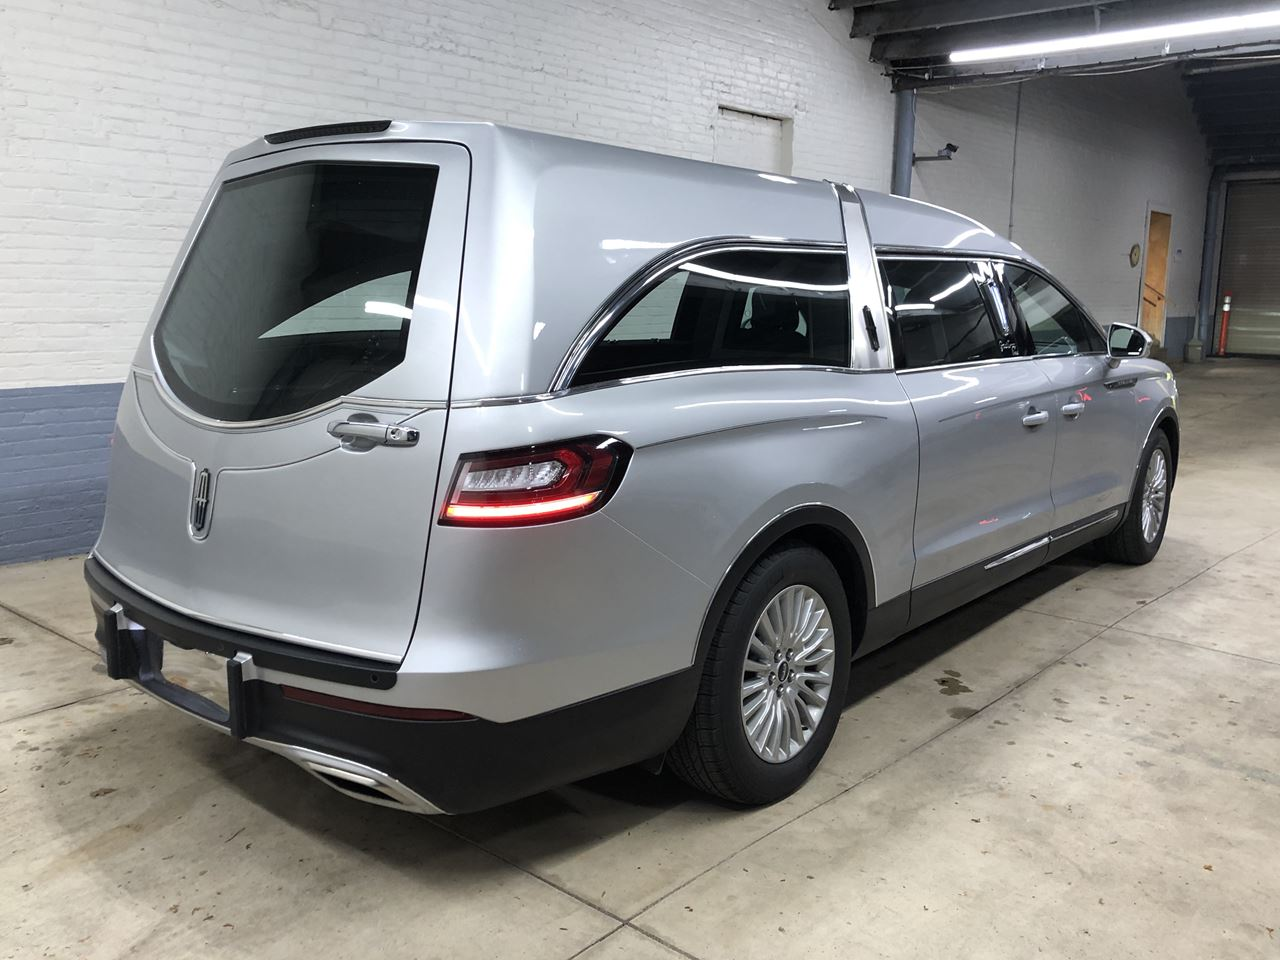 2019 Lincoln Nautilus MK Grand Legacy Limited 322 23